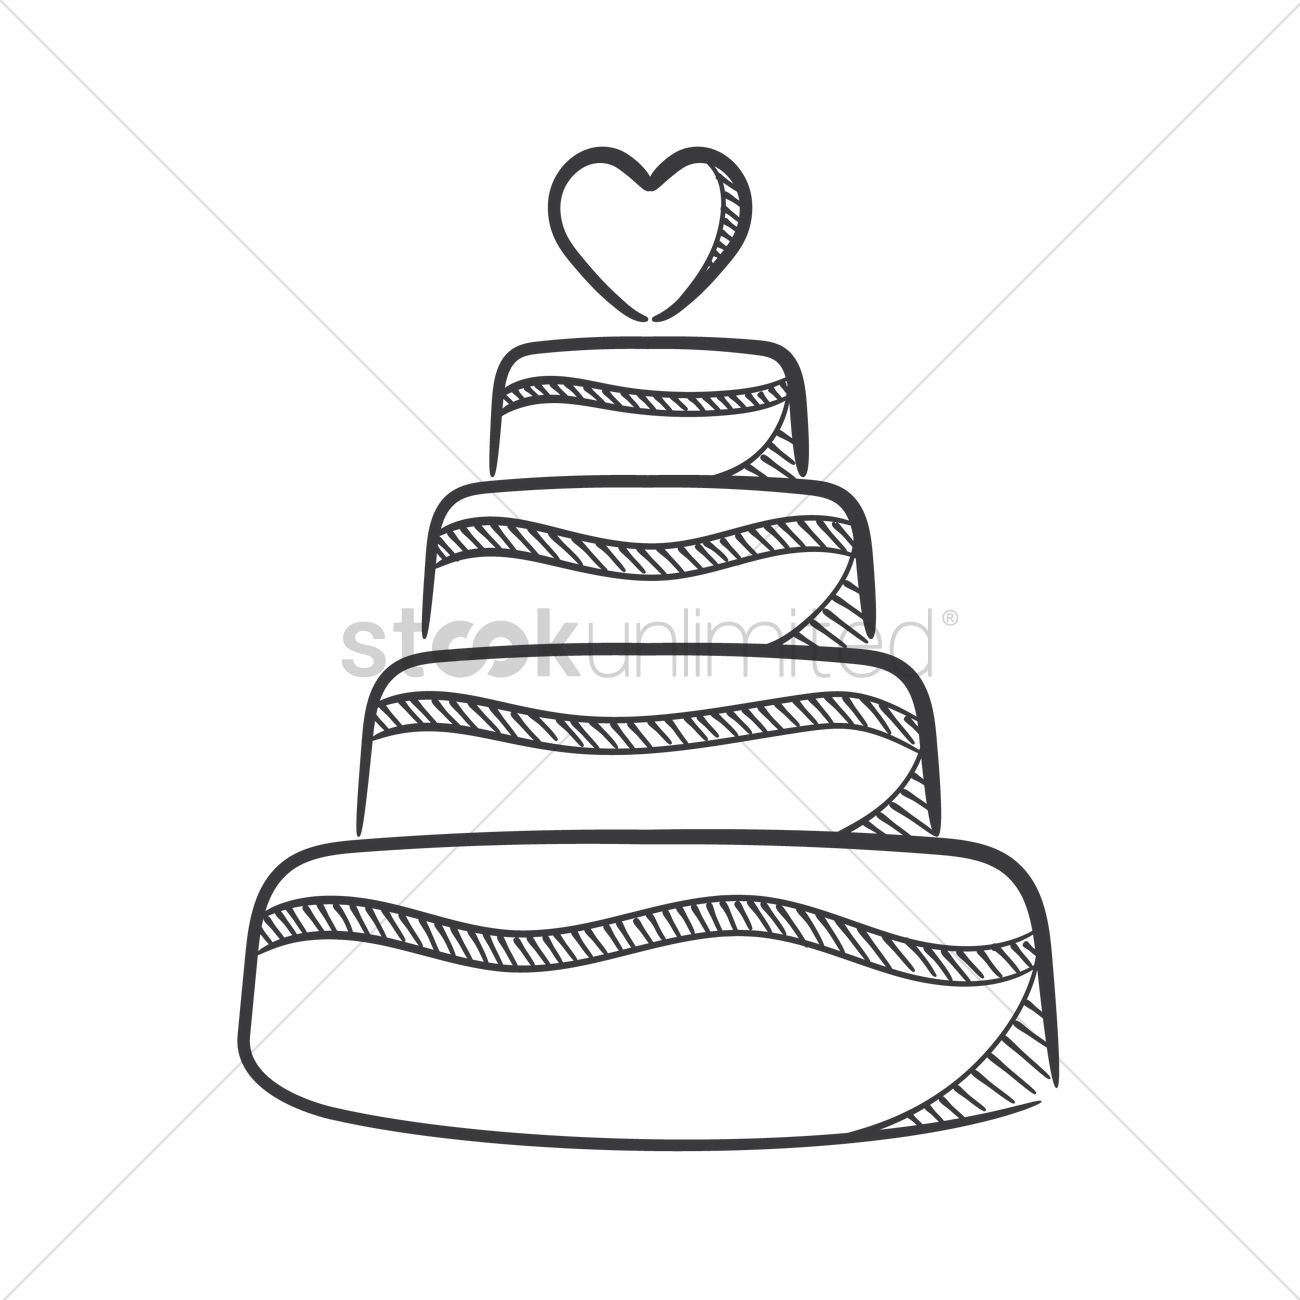 Wedding Cake 1637213 in addition About furthermore How To Draw Chibi Batman together with 1086455 further Baby Bison. on drawing cape